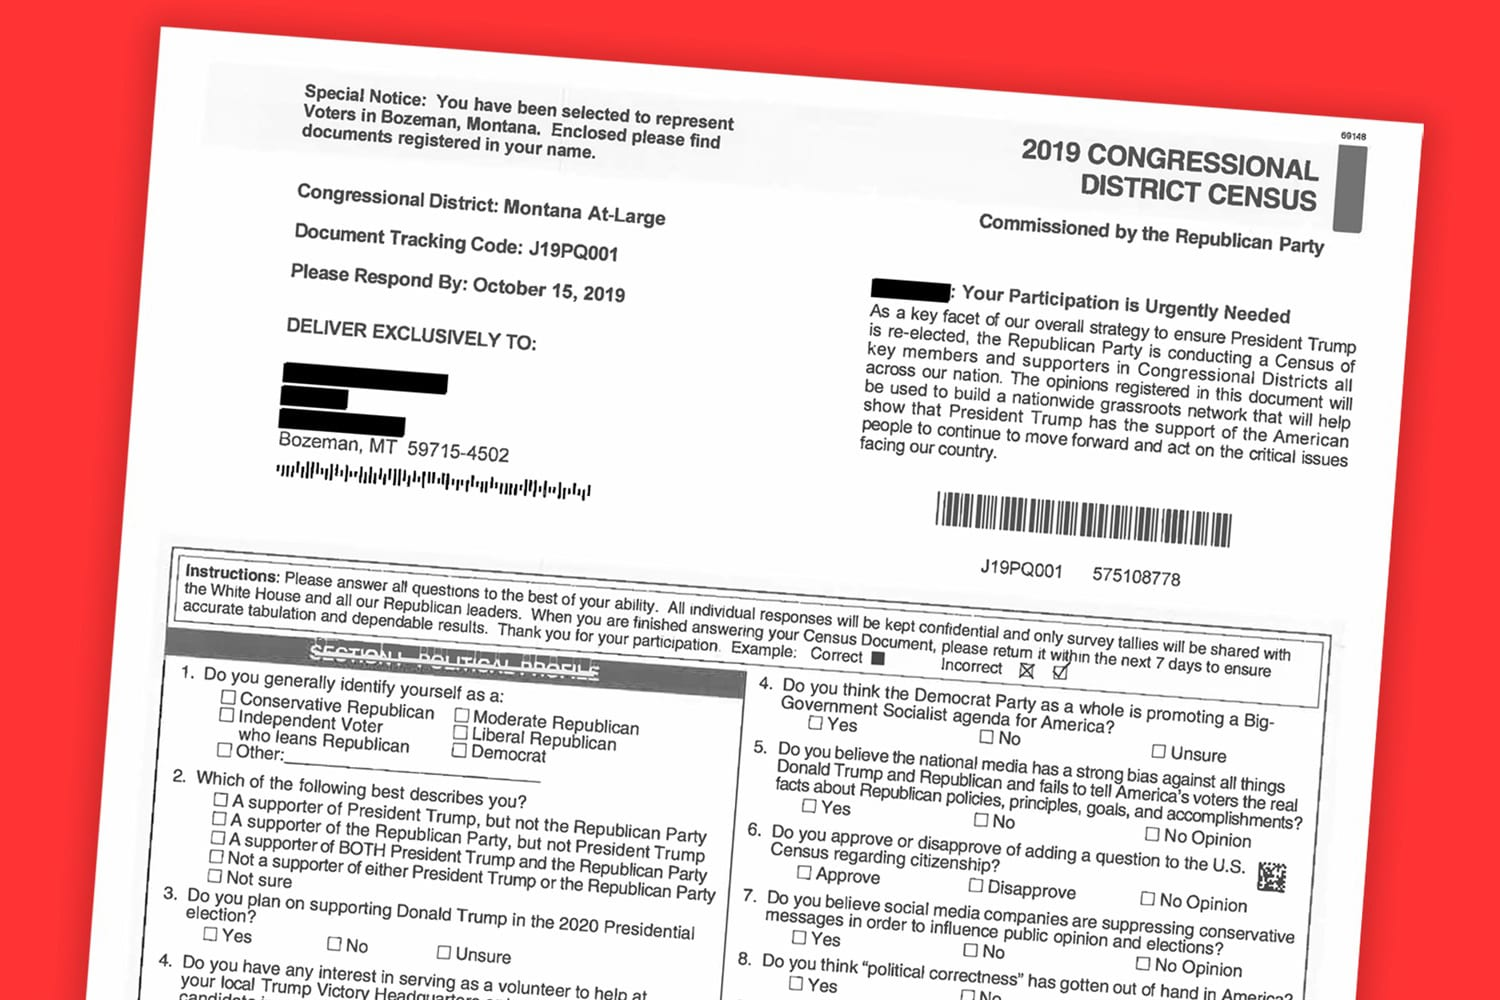 Civil rights groups slam RNC for 'fraudulent' census mailers to Montana residents